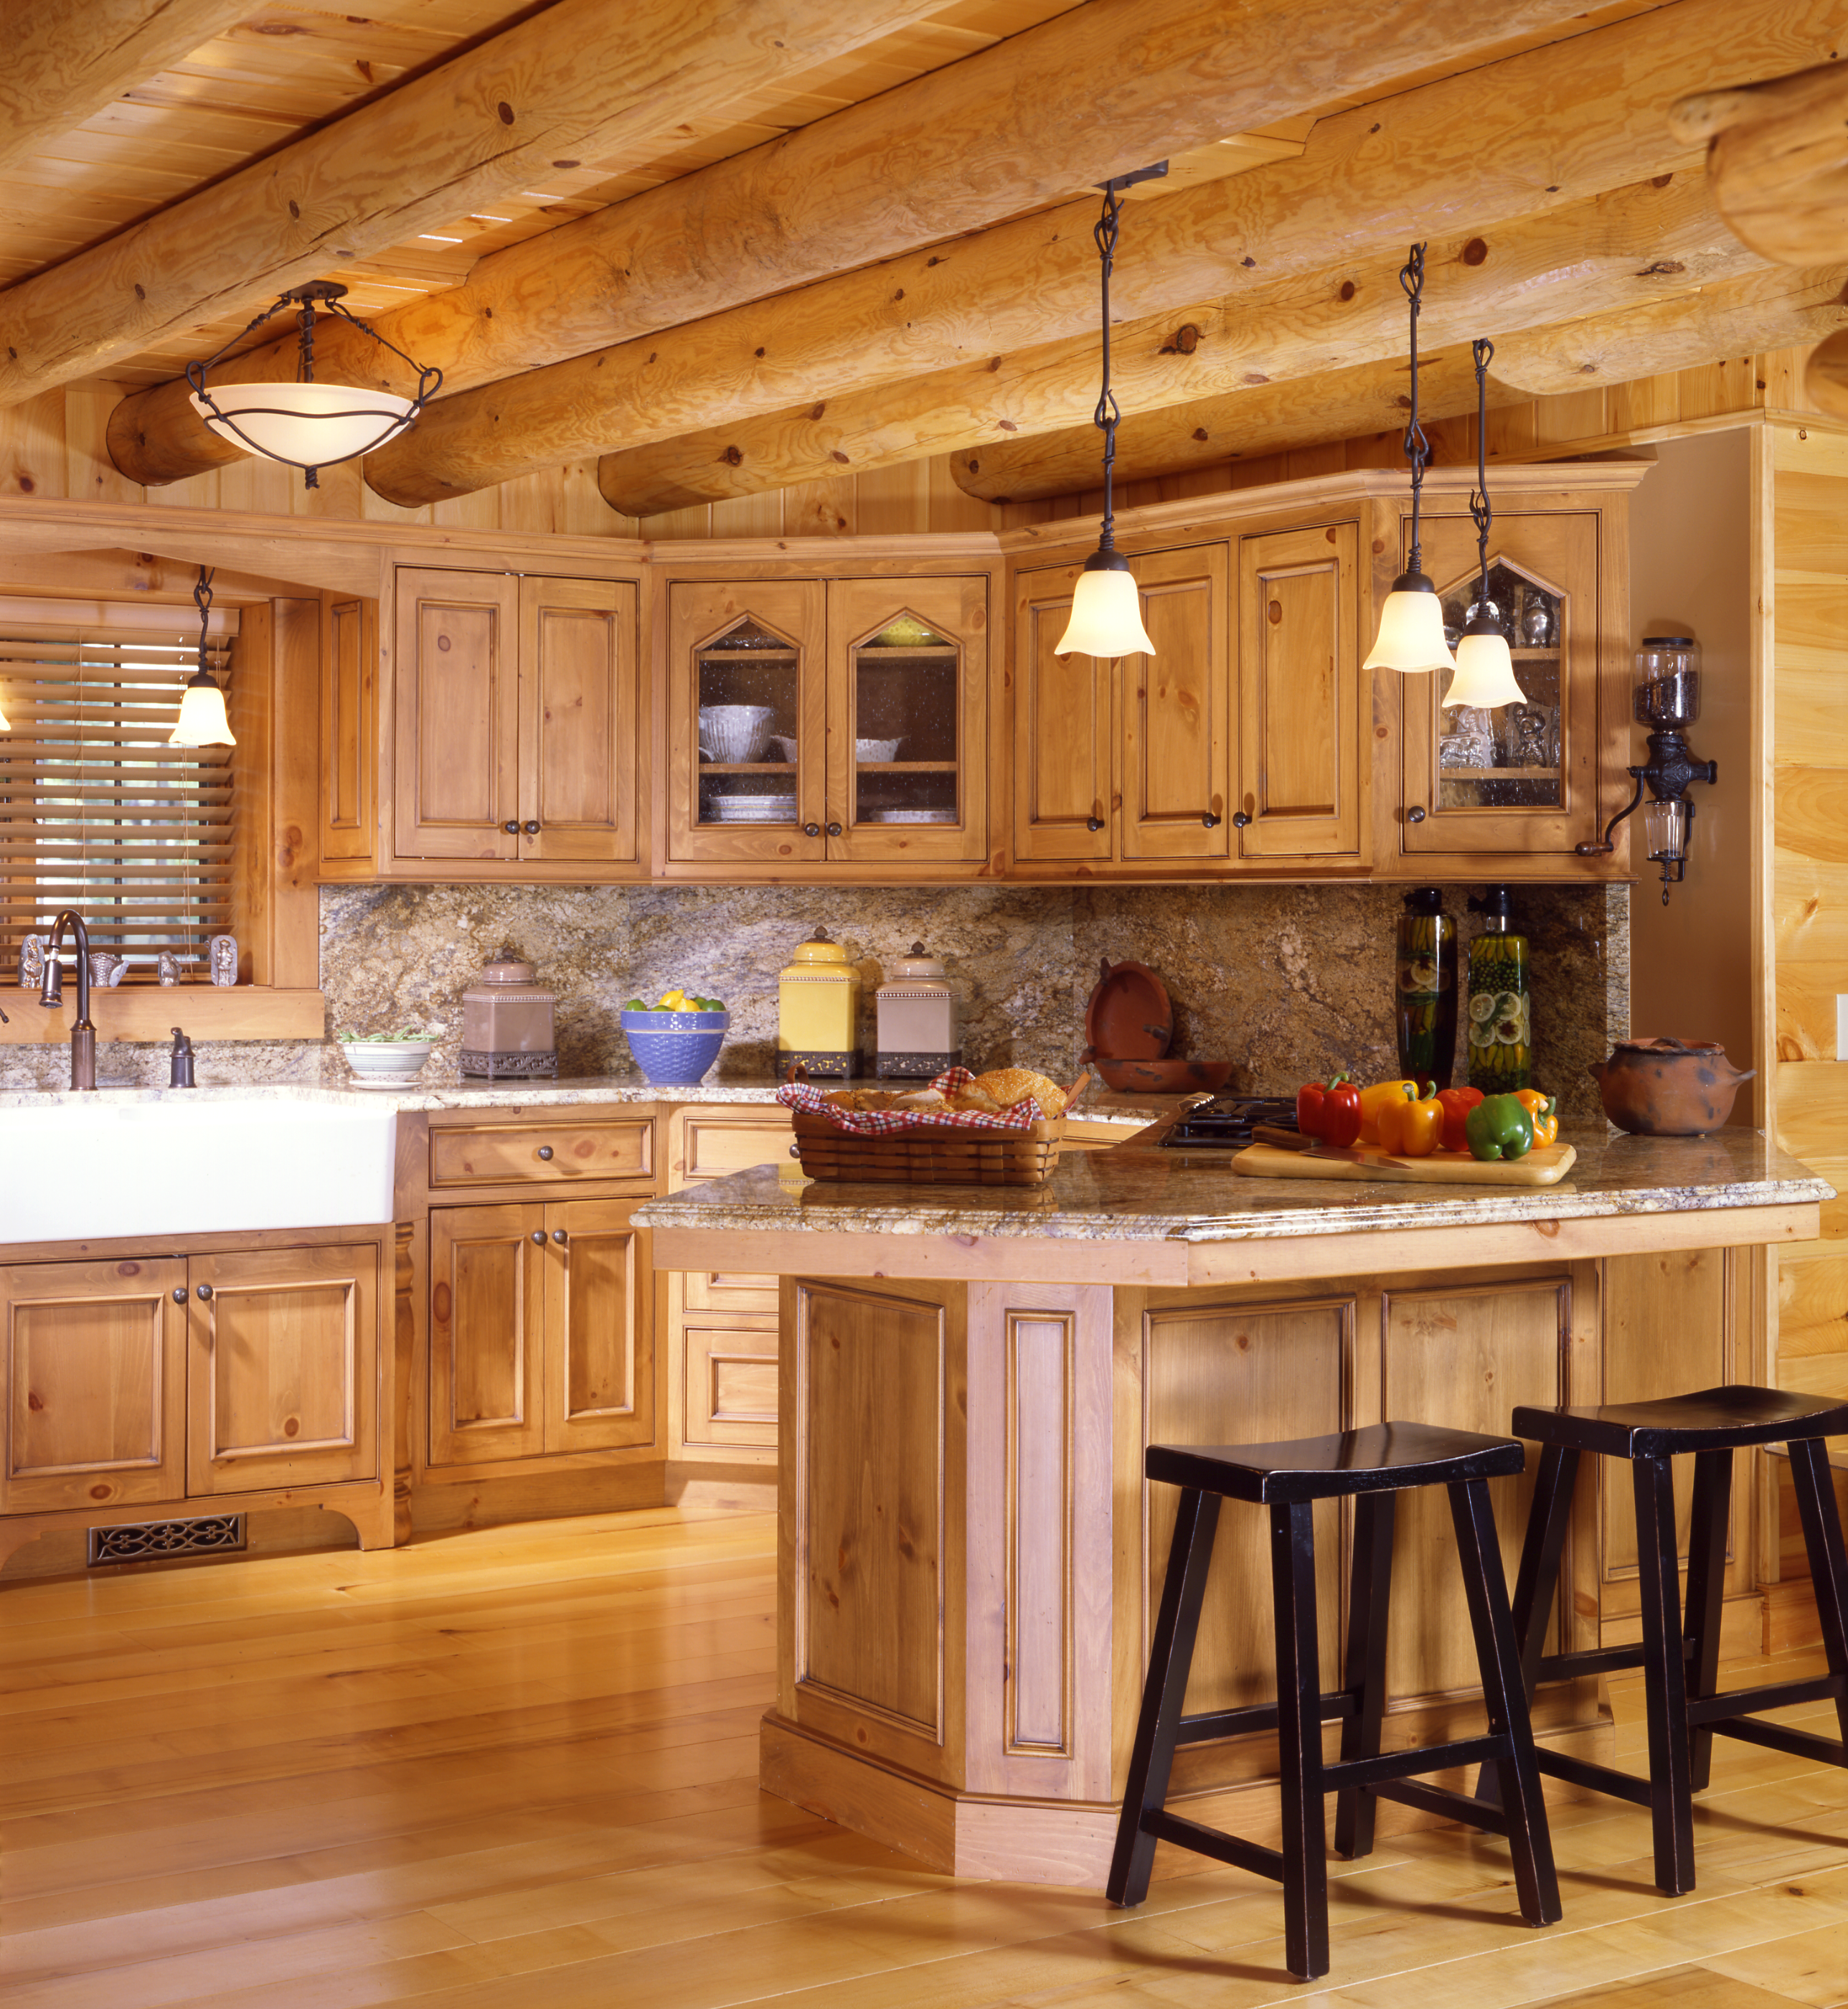 Cabin kitchens real log style for Log cabin kitchen backsplash ideas